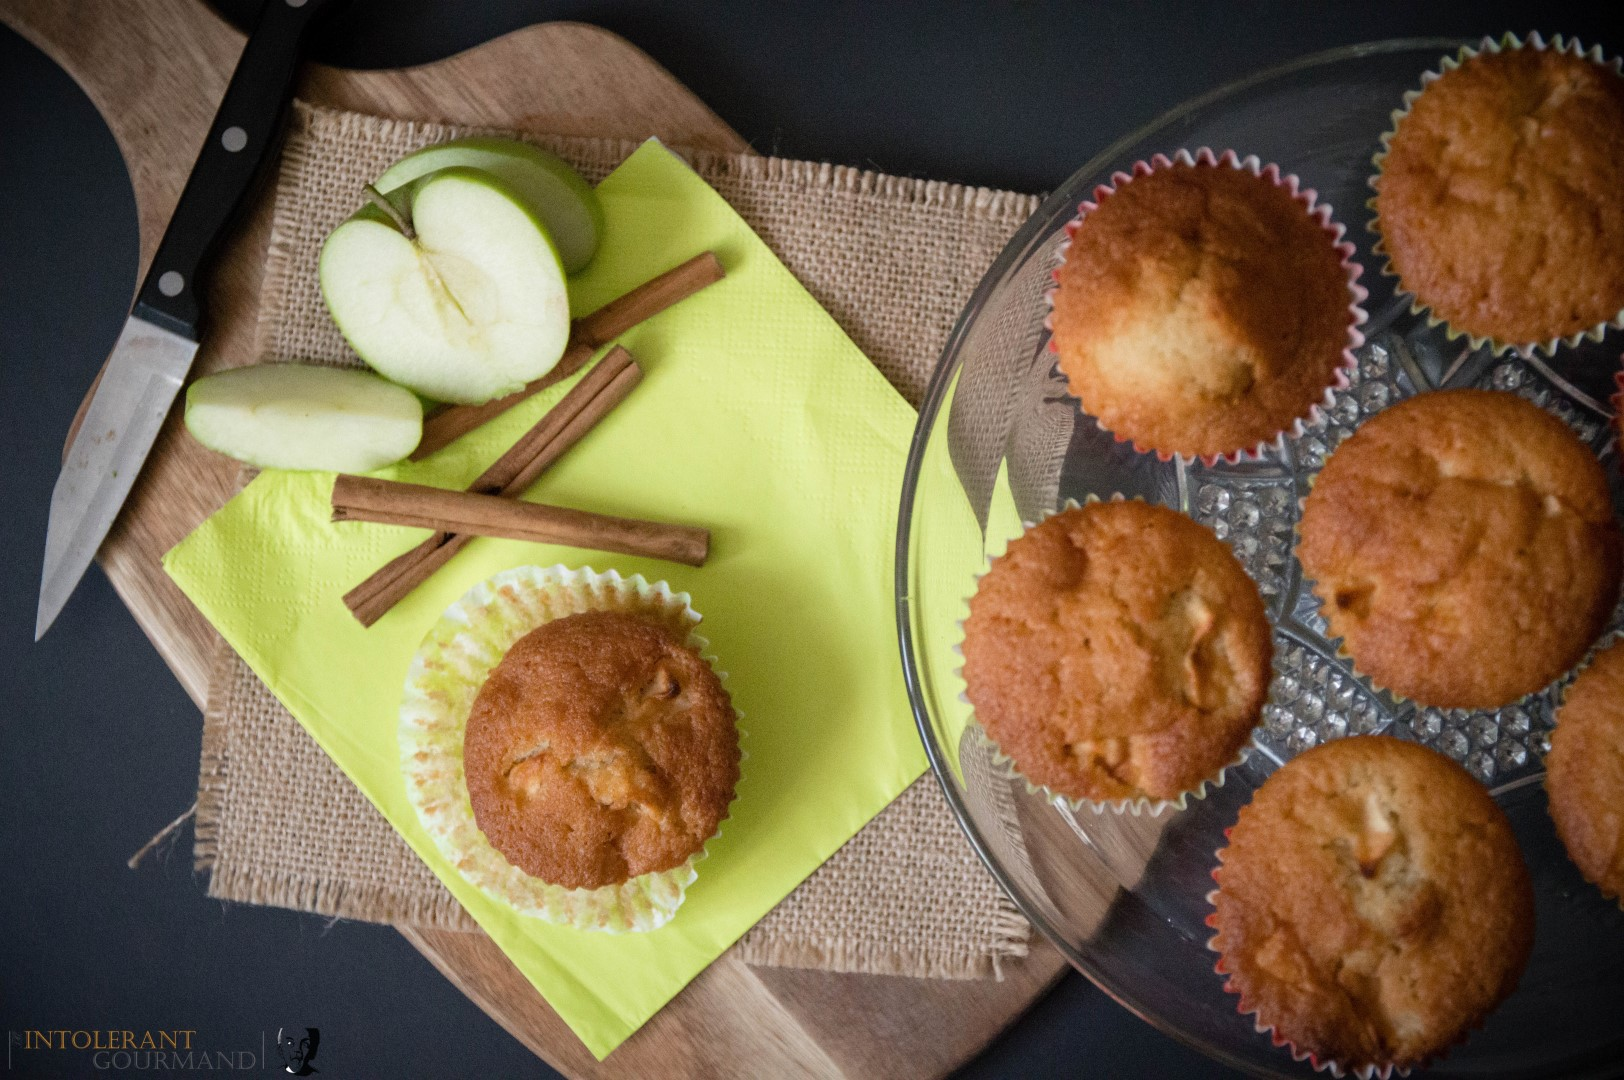 Apple Muffins gluten free and vegan - a deliciously light sponge with the warming flavours from cinnamon and other spices and the healthy and naturally sweet apples! www.intolerantgourmand.com